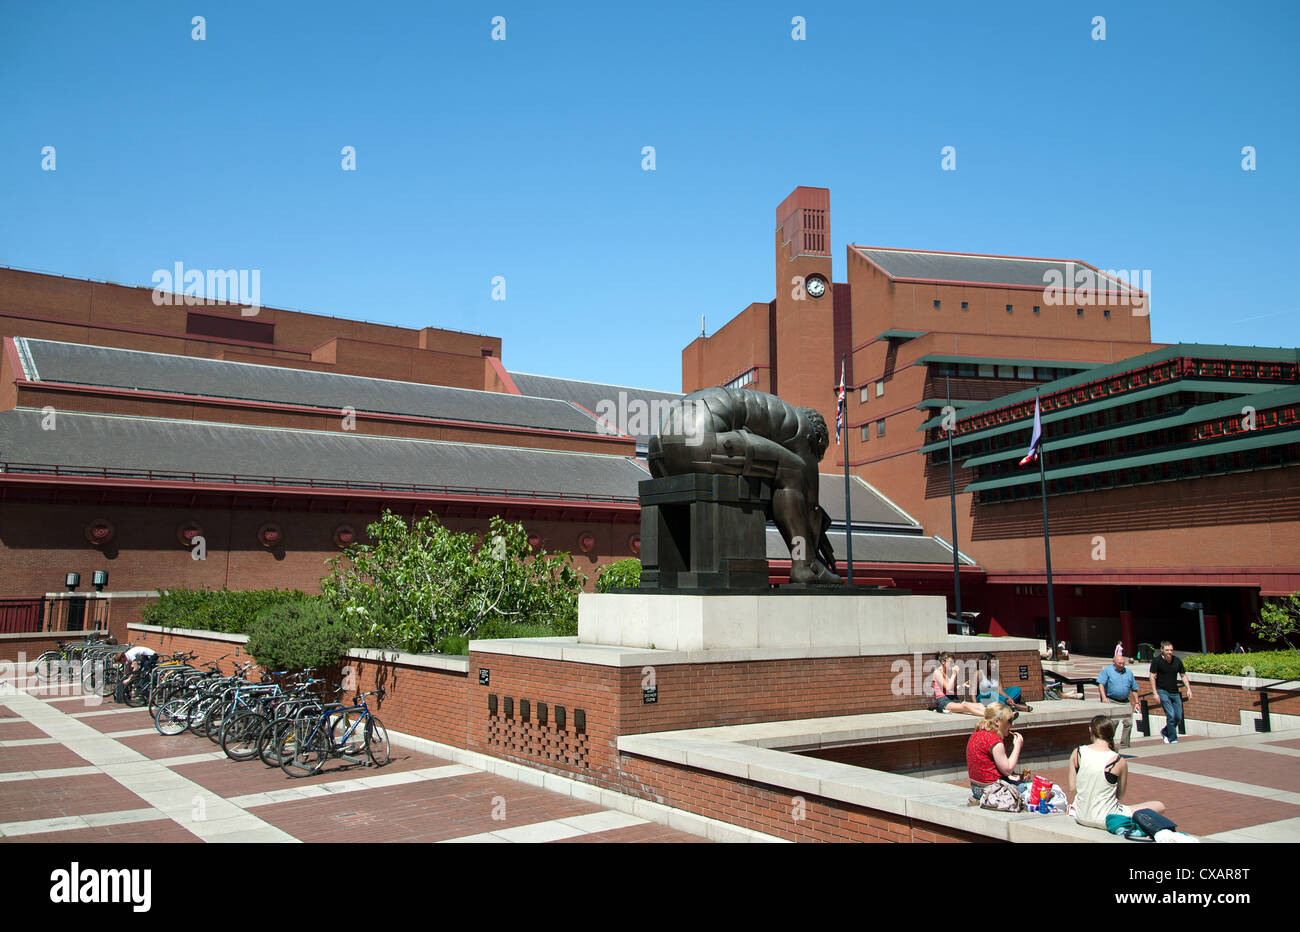 Courtyard of the British Library showing sculpture of Isaac Newton by Eduardo Paolozzi, Euston Road, London, England - Stock Image